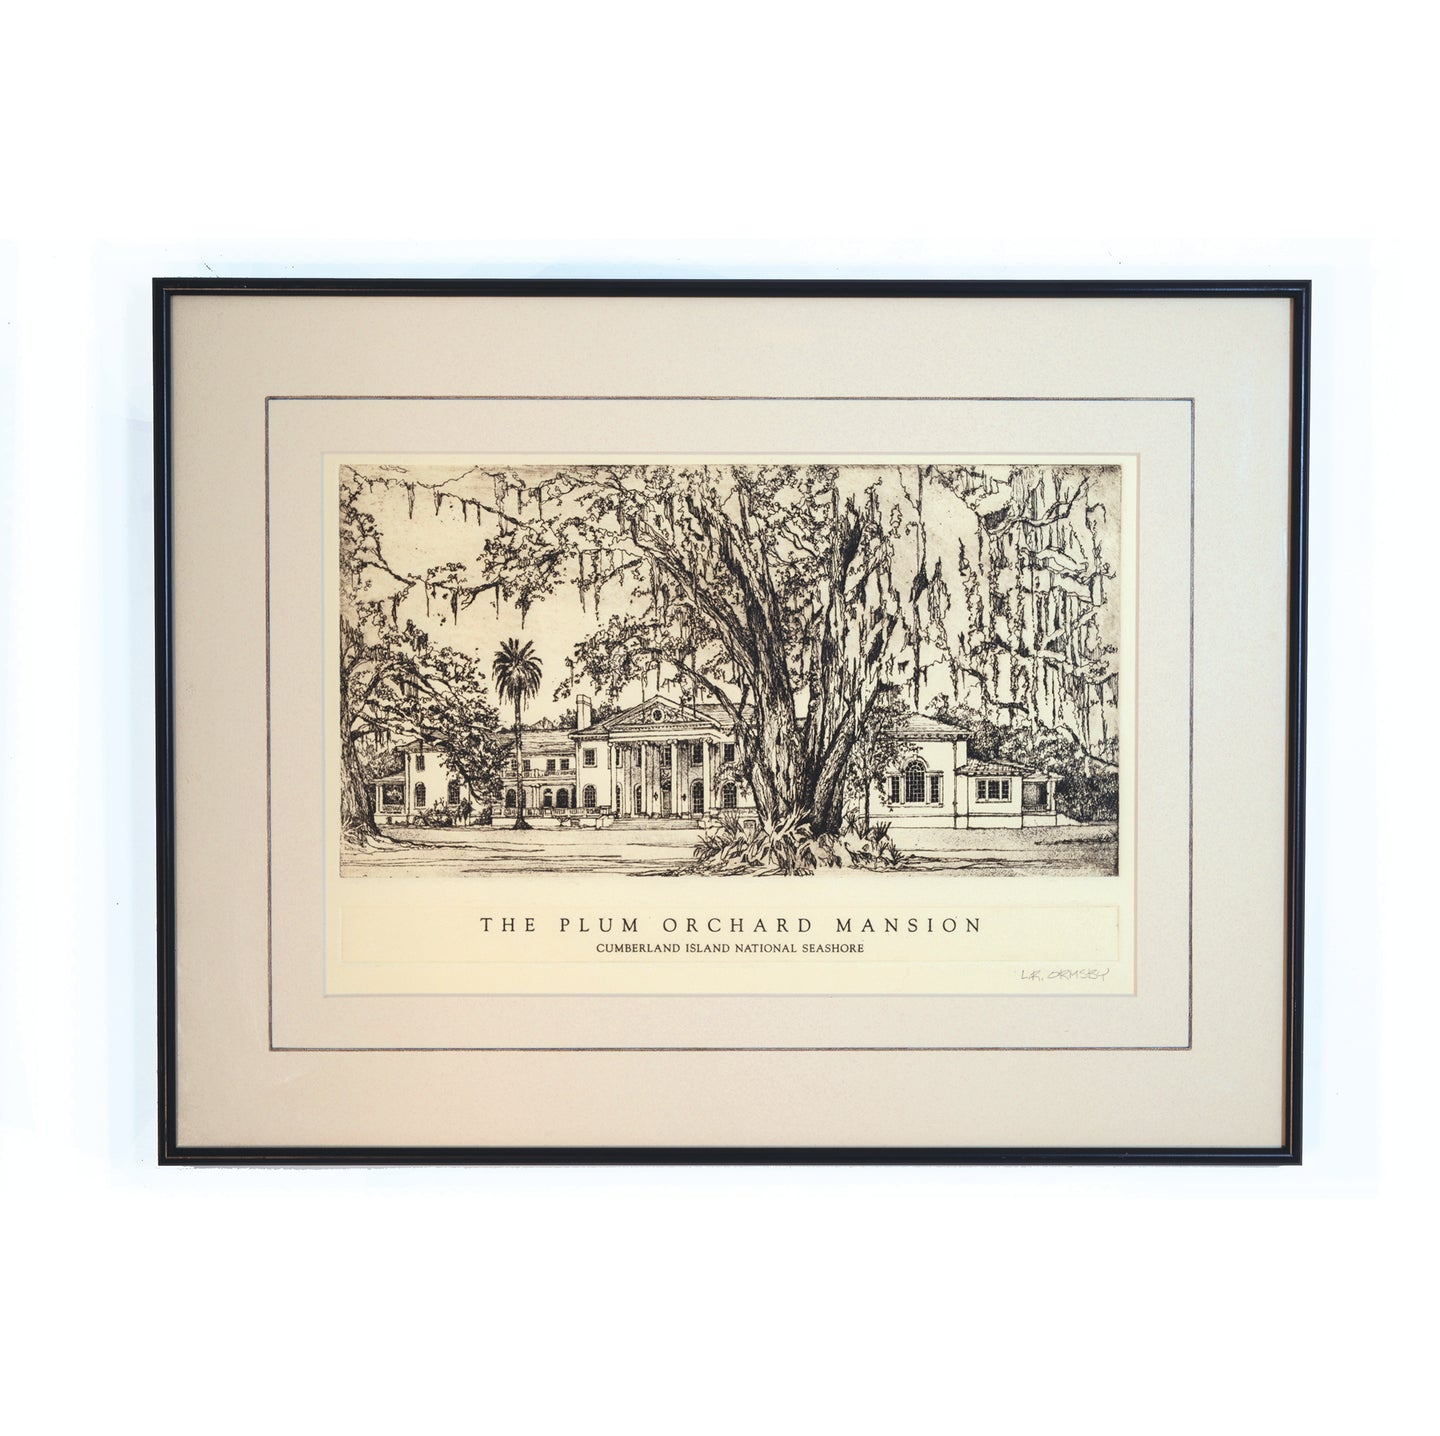 Plum Orchard Mansion etching